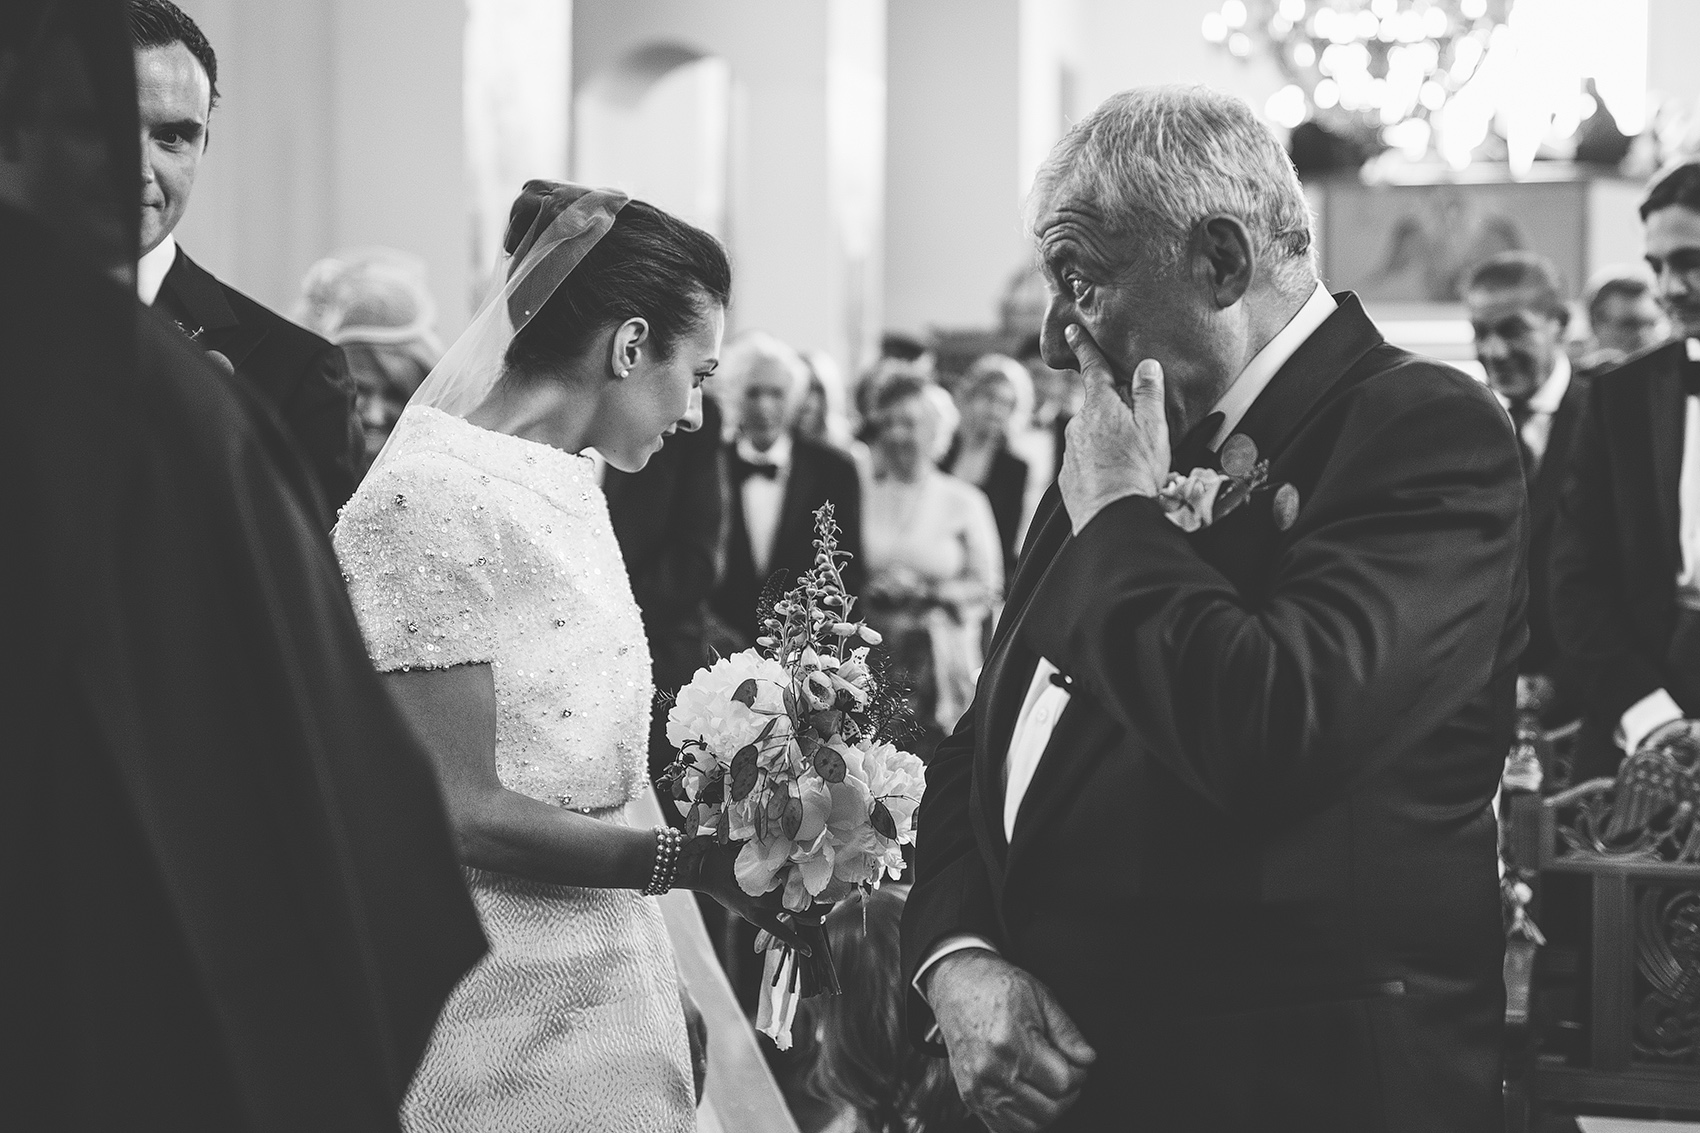 best-of-2017-wedding-photography-28.jpg